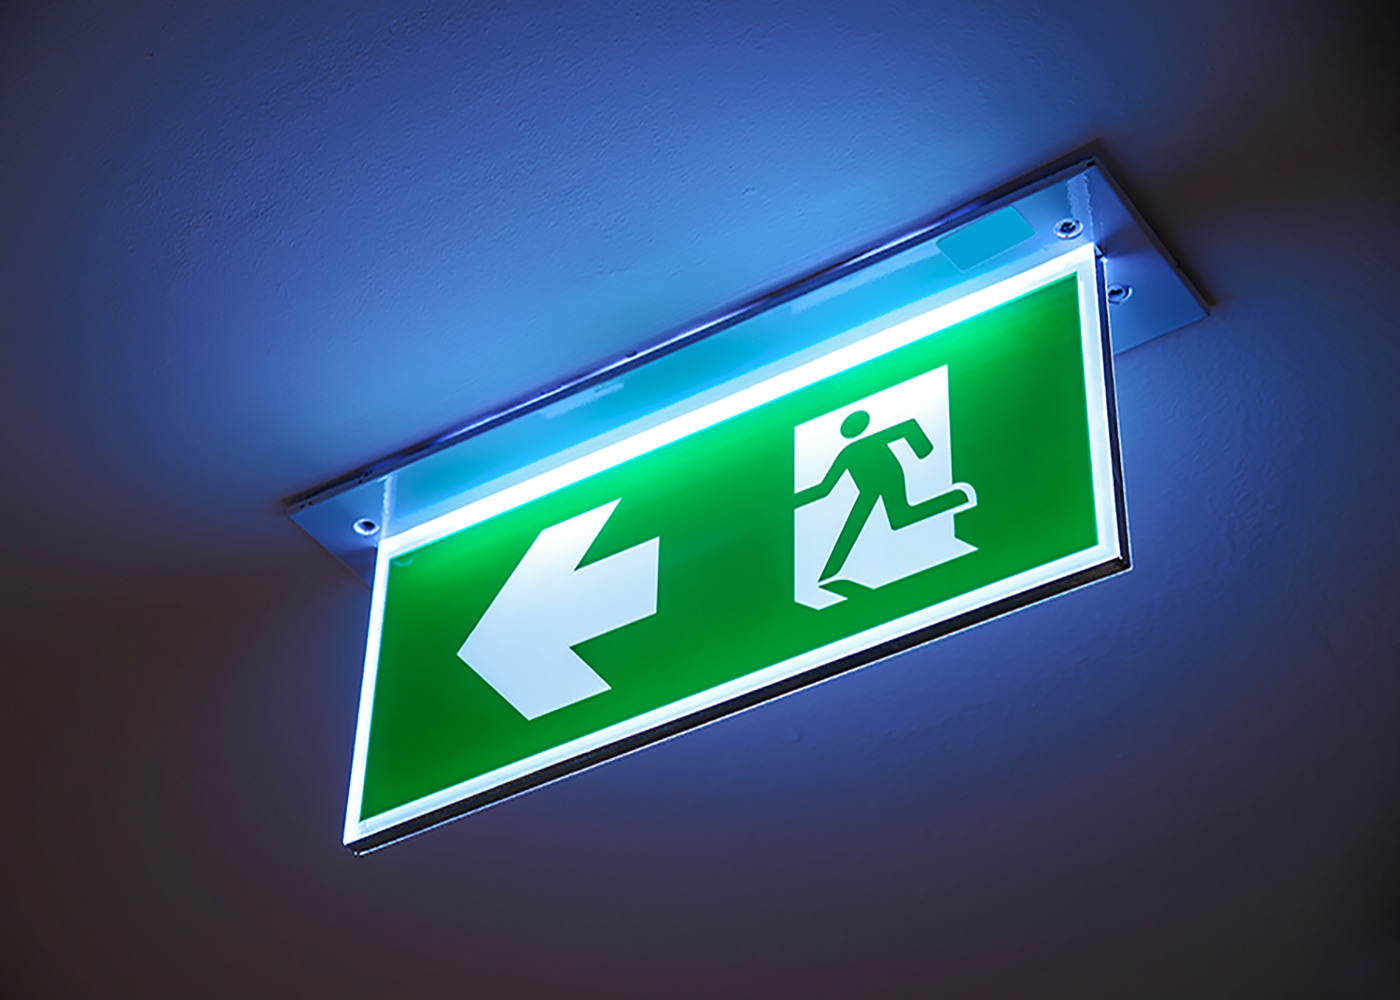 Fire Exit ,green Emergency Exit Sign.